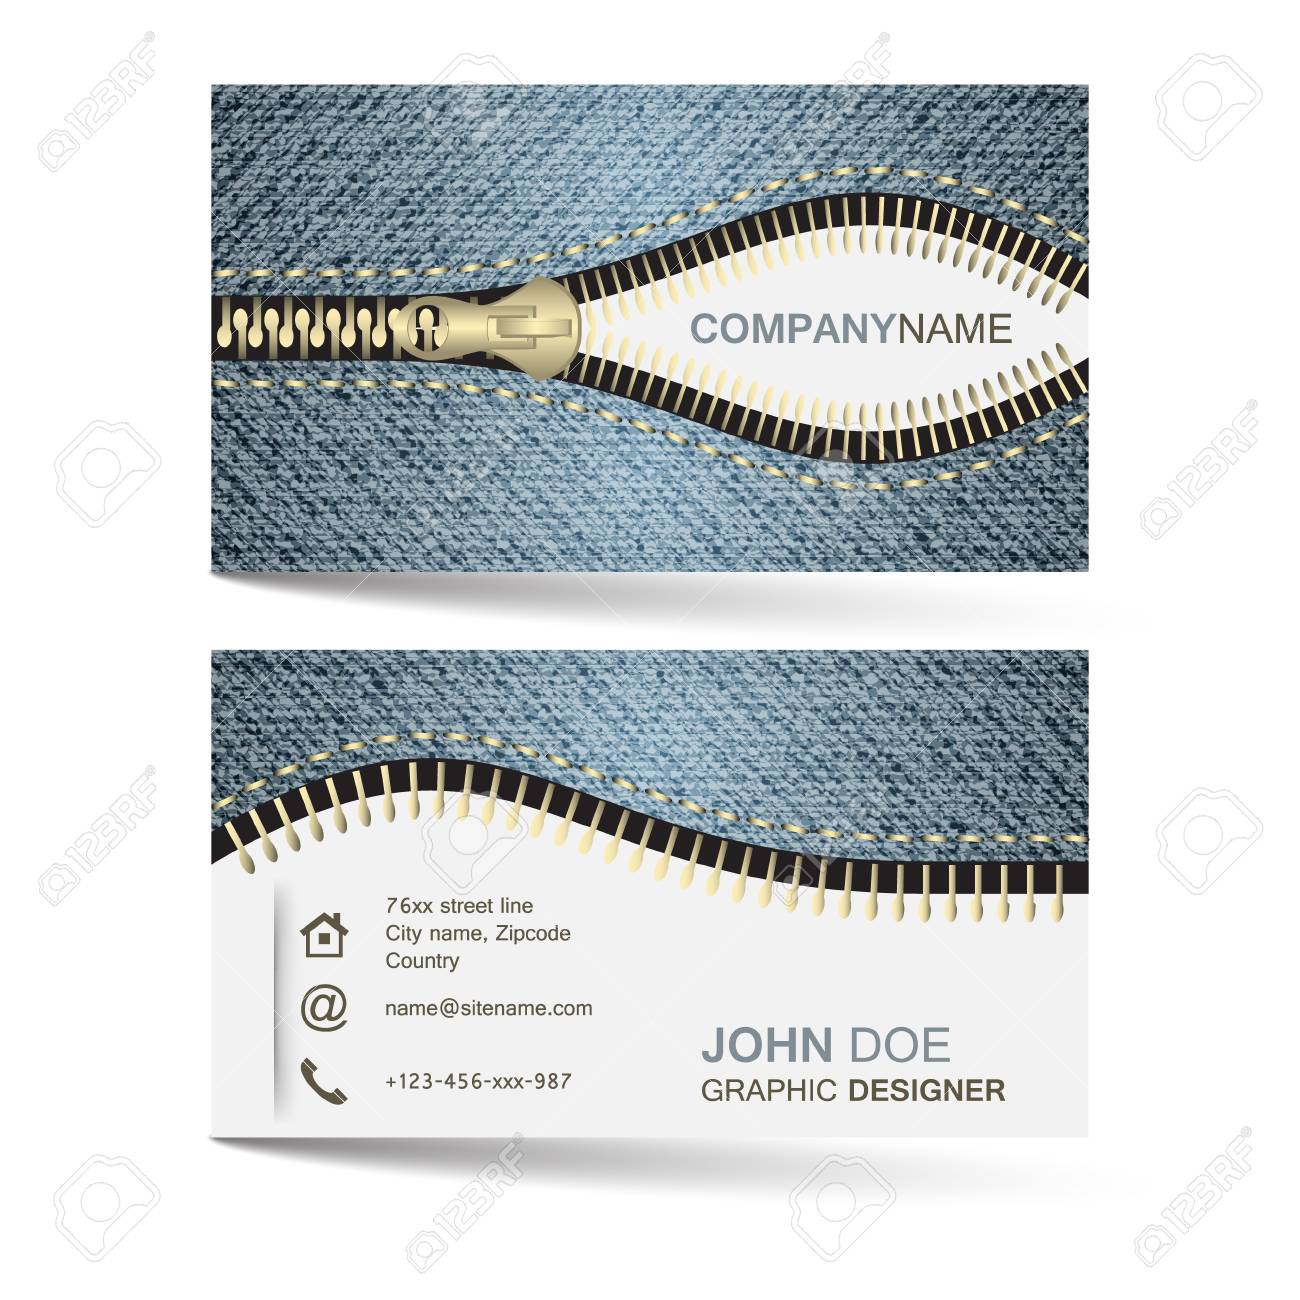 Leopard Business Cards Choice Image - Free Business Cards